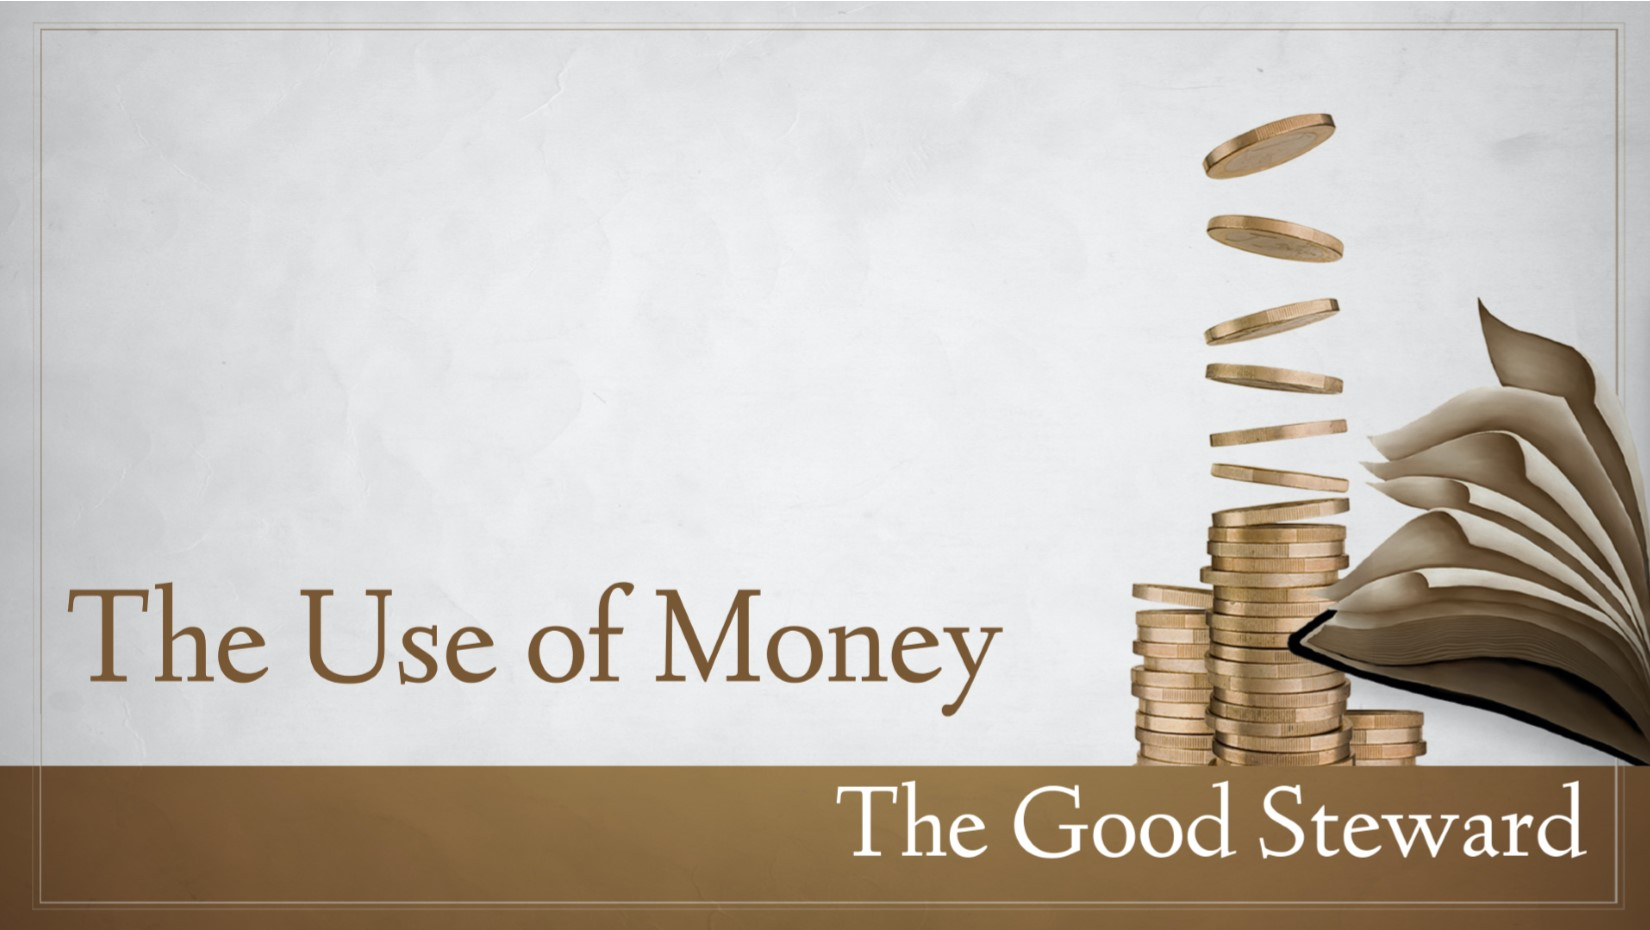 11.22.2020 The Use Of Money: The Good Steward